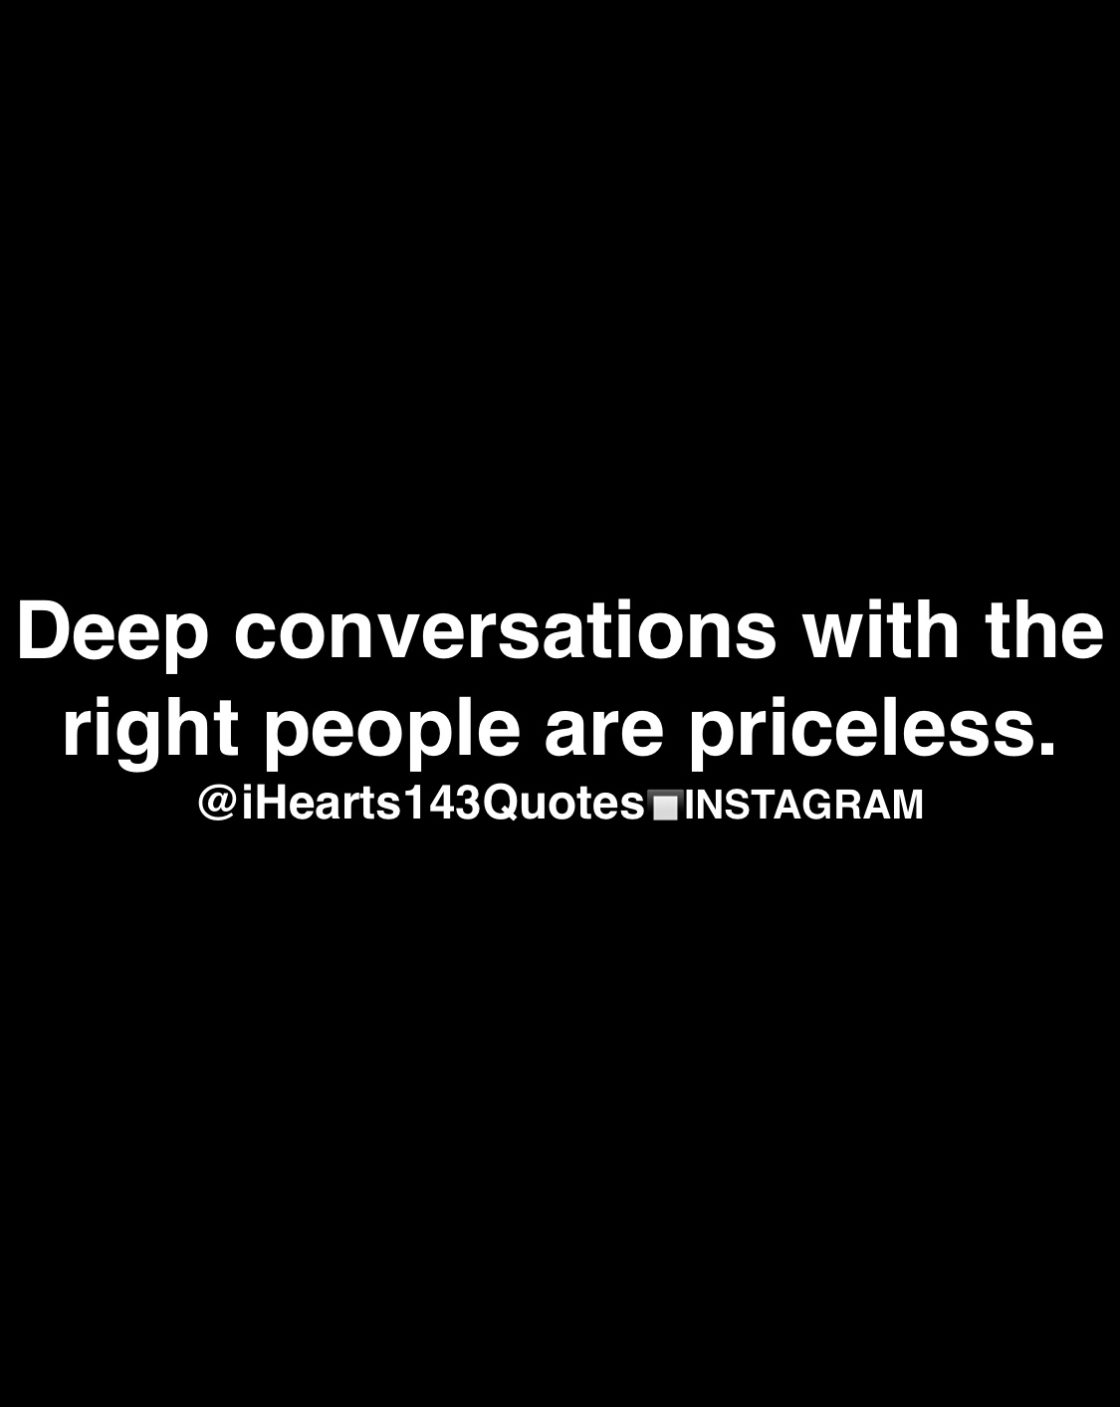 Image of: Beautiful Official Ihearts143quotes Blog Feed Since 2014 Motivational And Inspirational Quotes Deep Conversations With The Right People Are Priceless Quotes Ideas Relationship Page 300 Ihearts143quotes